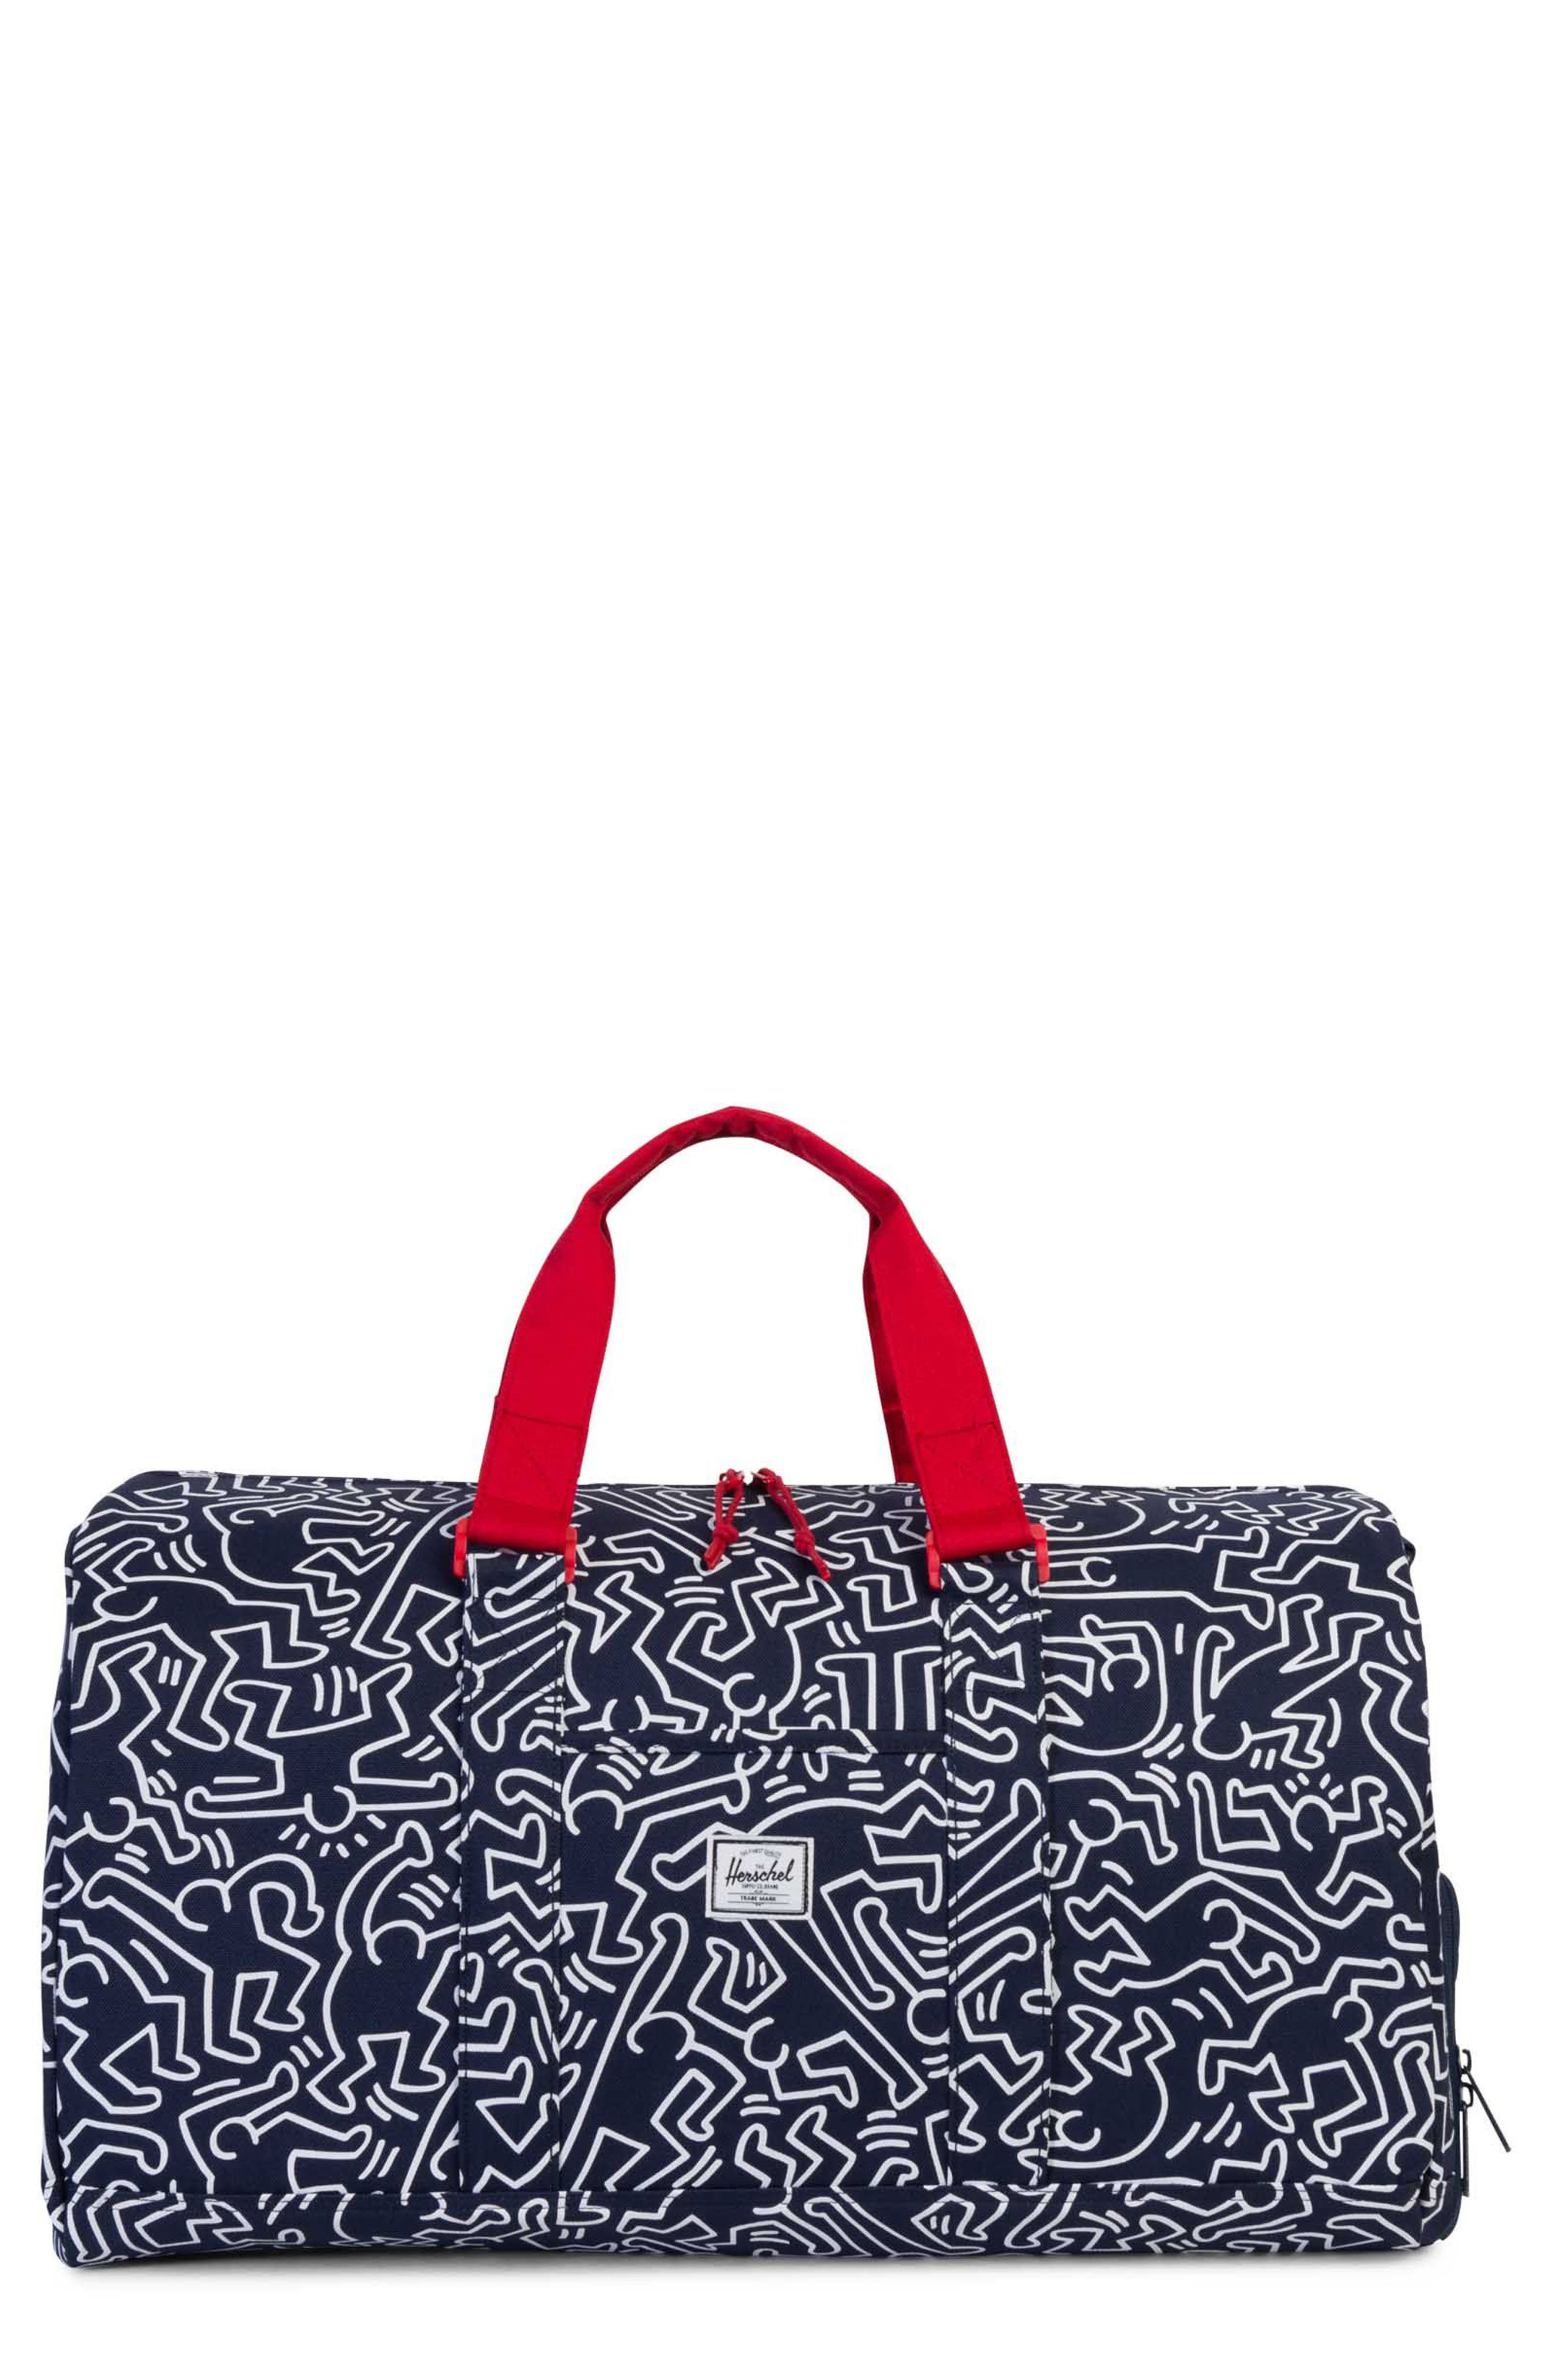 Herschel Supply Co. Novel x Keith Haring Duffel Bag